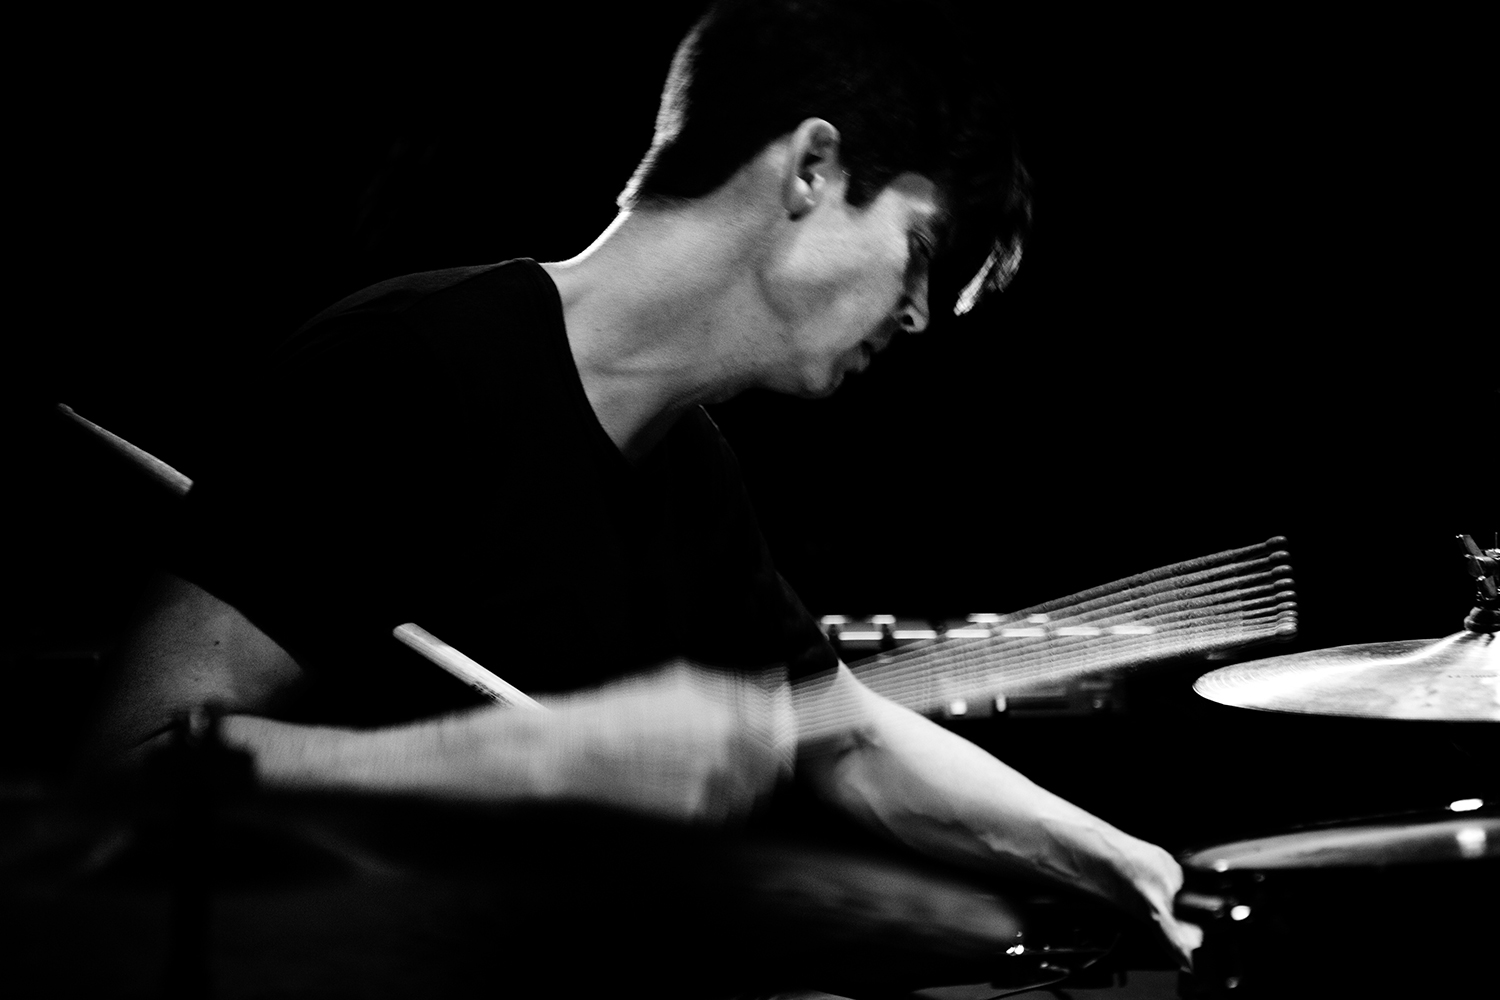 Ches Smith by Laurent Orseau - Concert - Les Ateliers Claus - Brussels, Belgium #7